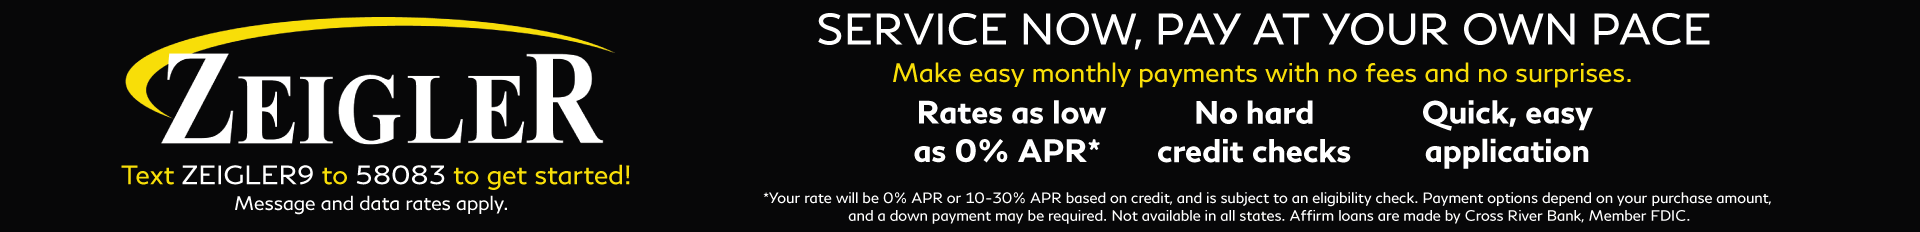 Zeigler Service. Service Now Pay At your own time.